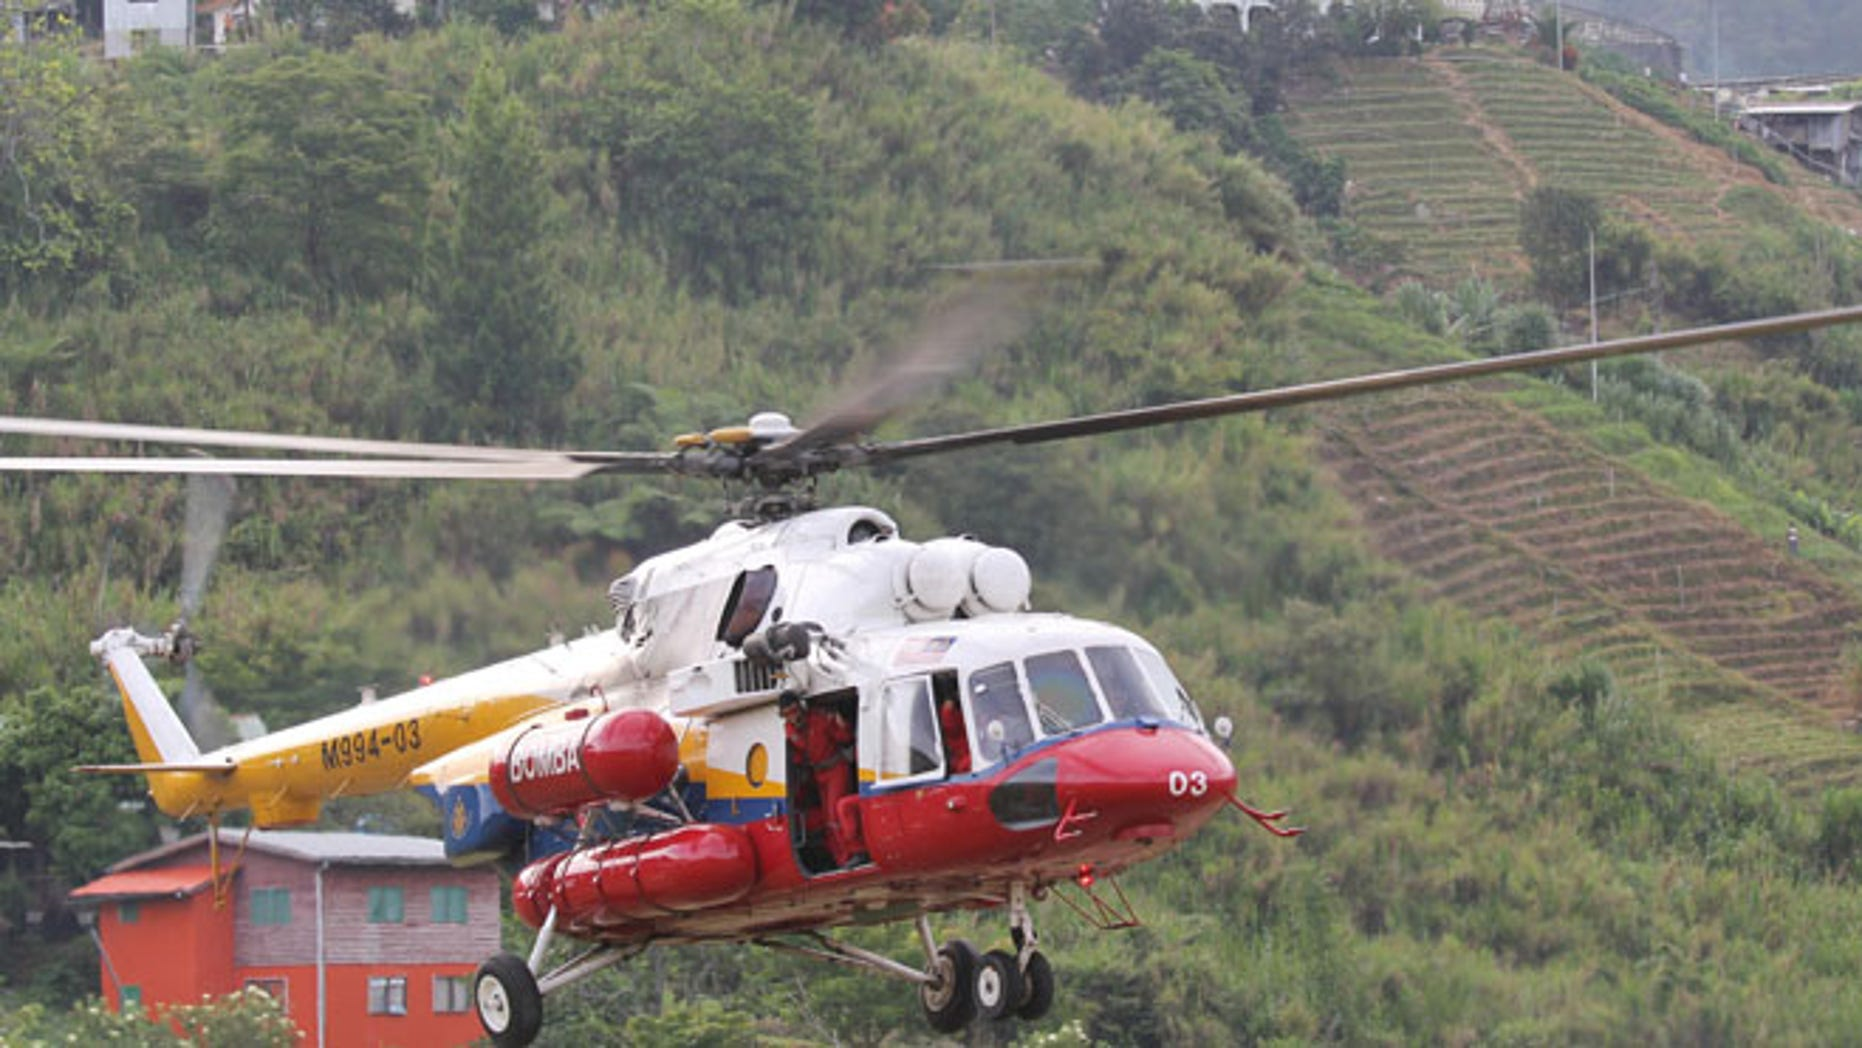 June 6, 2015:A helicopter leaves Kundasang, Malaysia for Mount Kinabalu to recover the bodies of climbers. (AP)